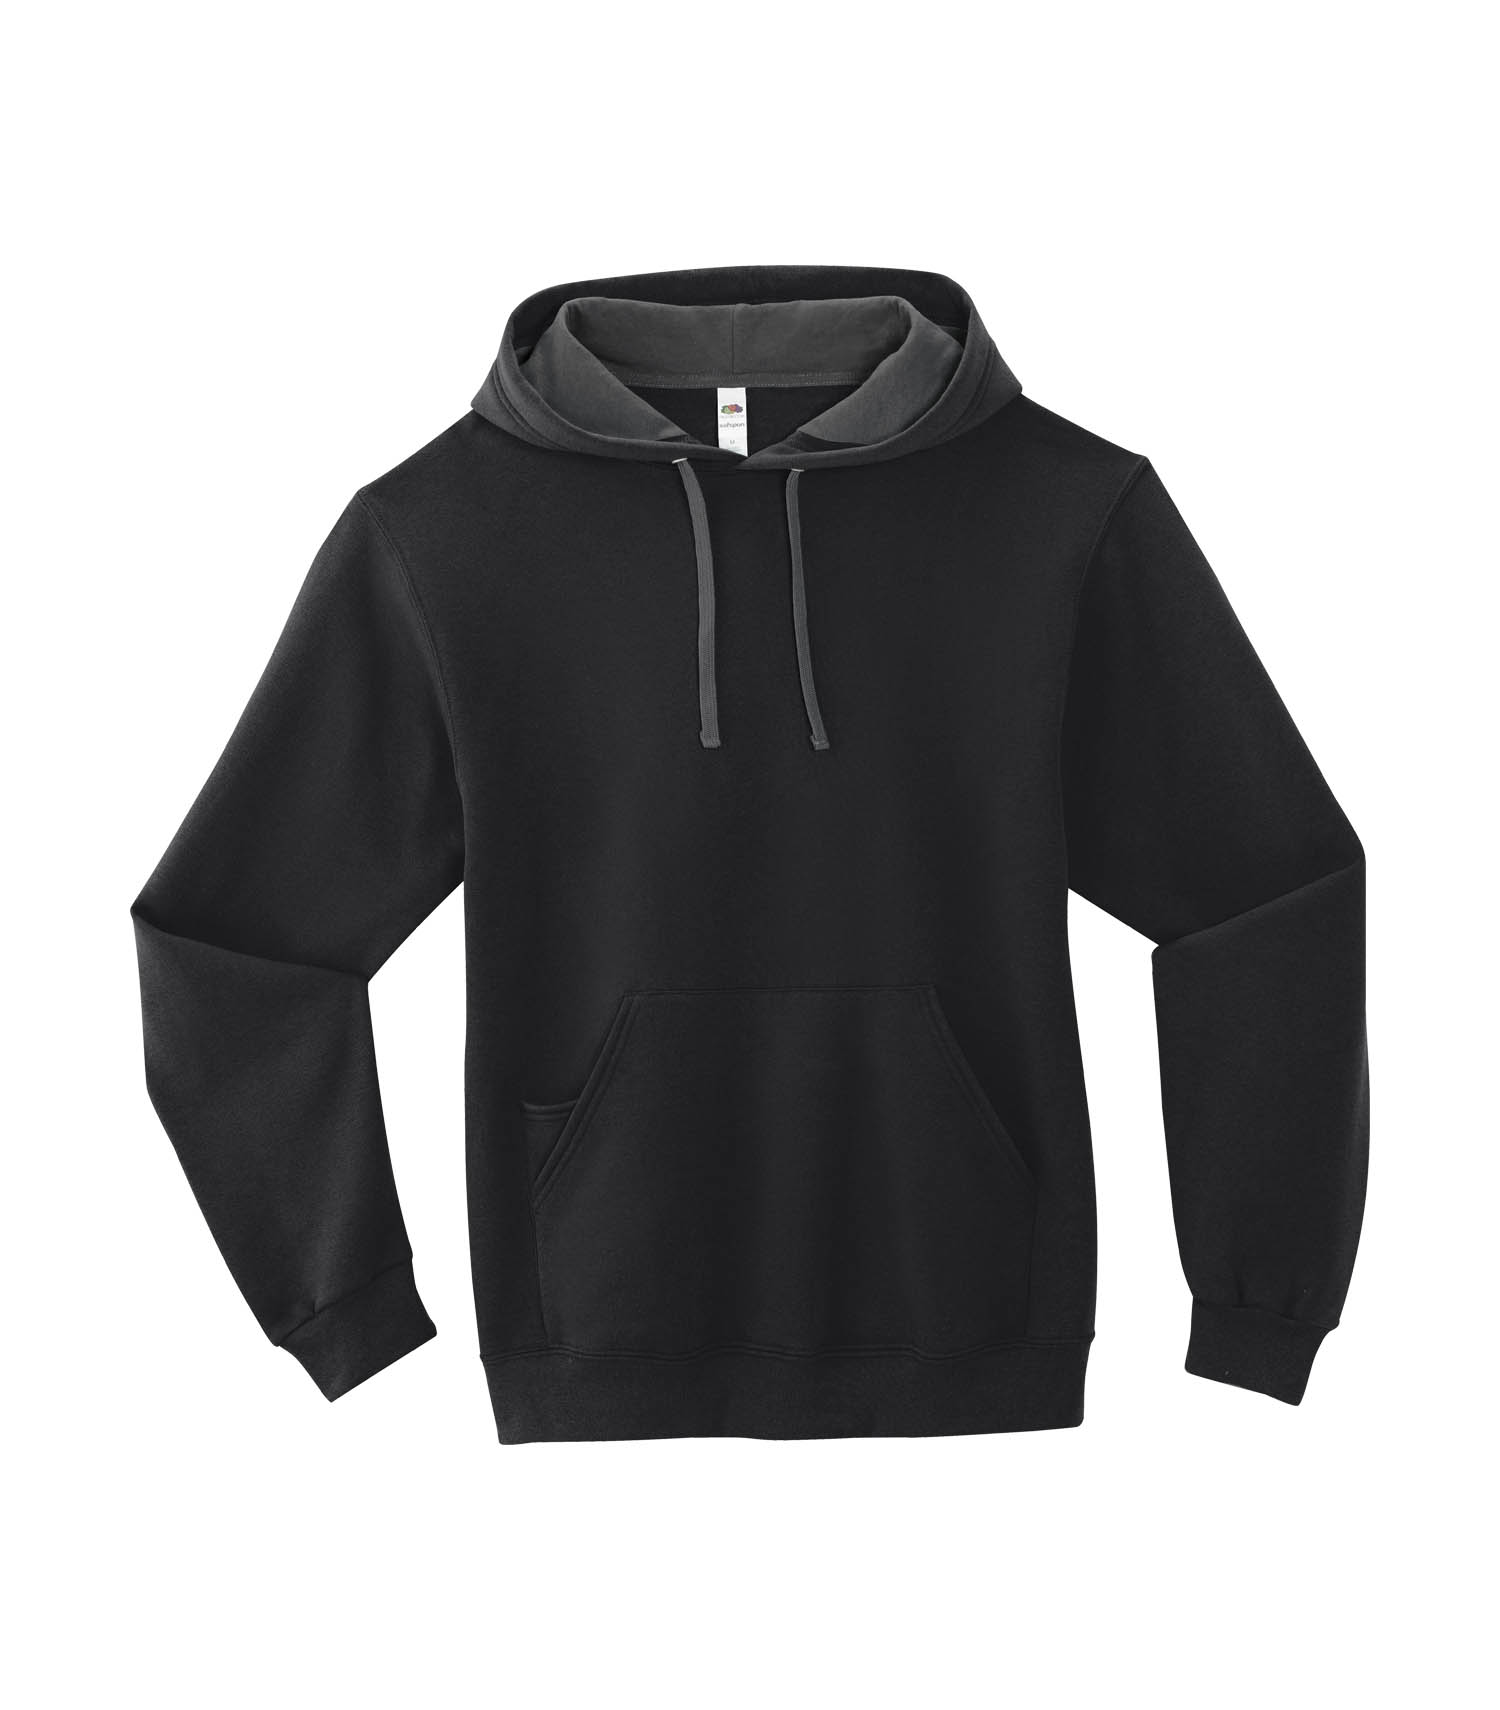 fbd7074c 'A picture of a FRUIT OF THE LOOM SOFSPUN HOODED SWEATSHIRT, ready to be. '